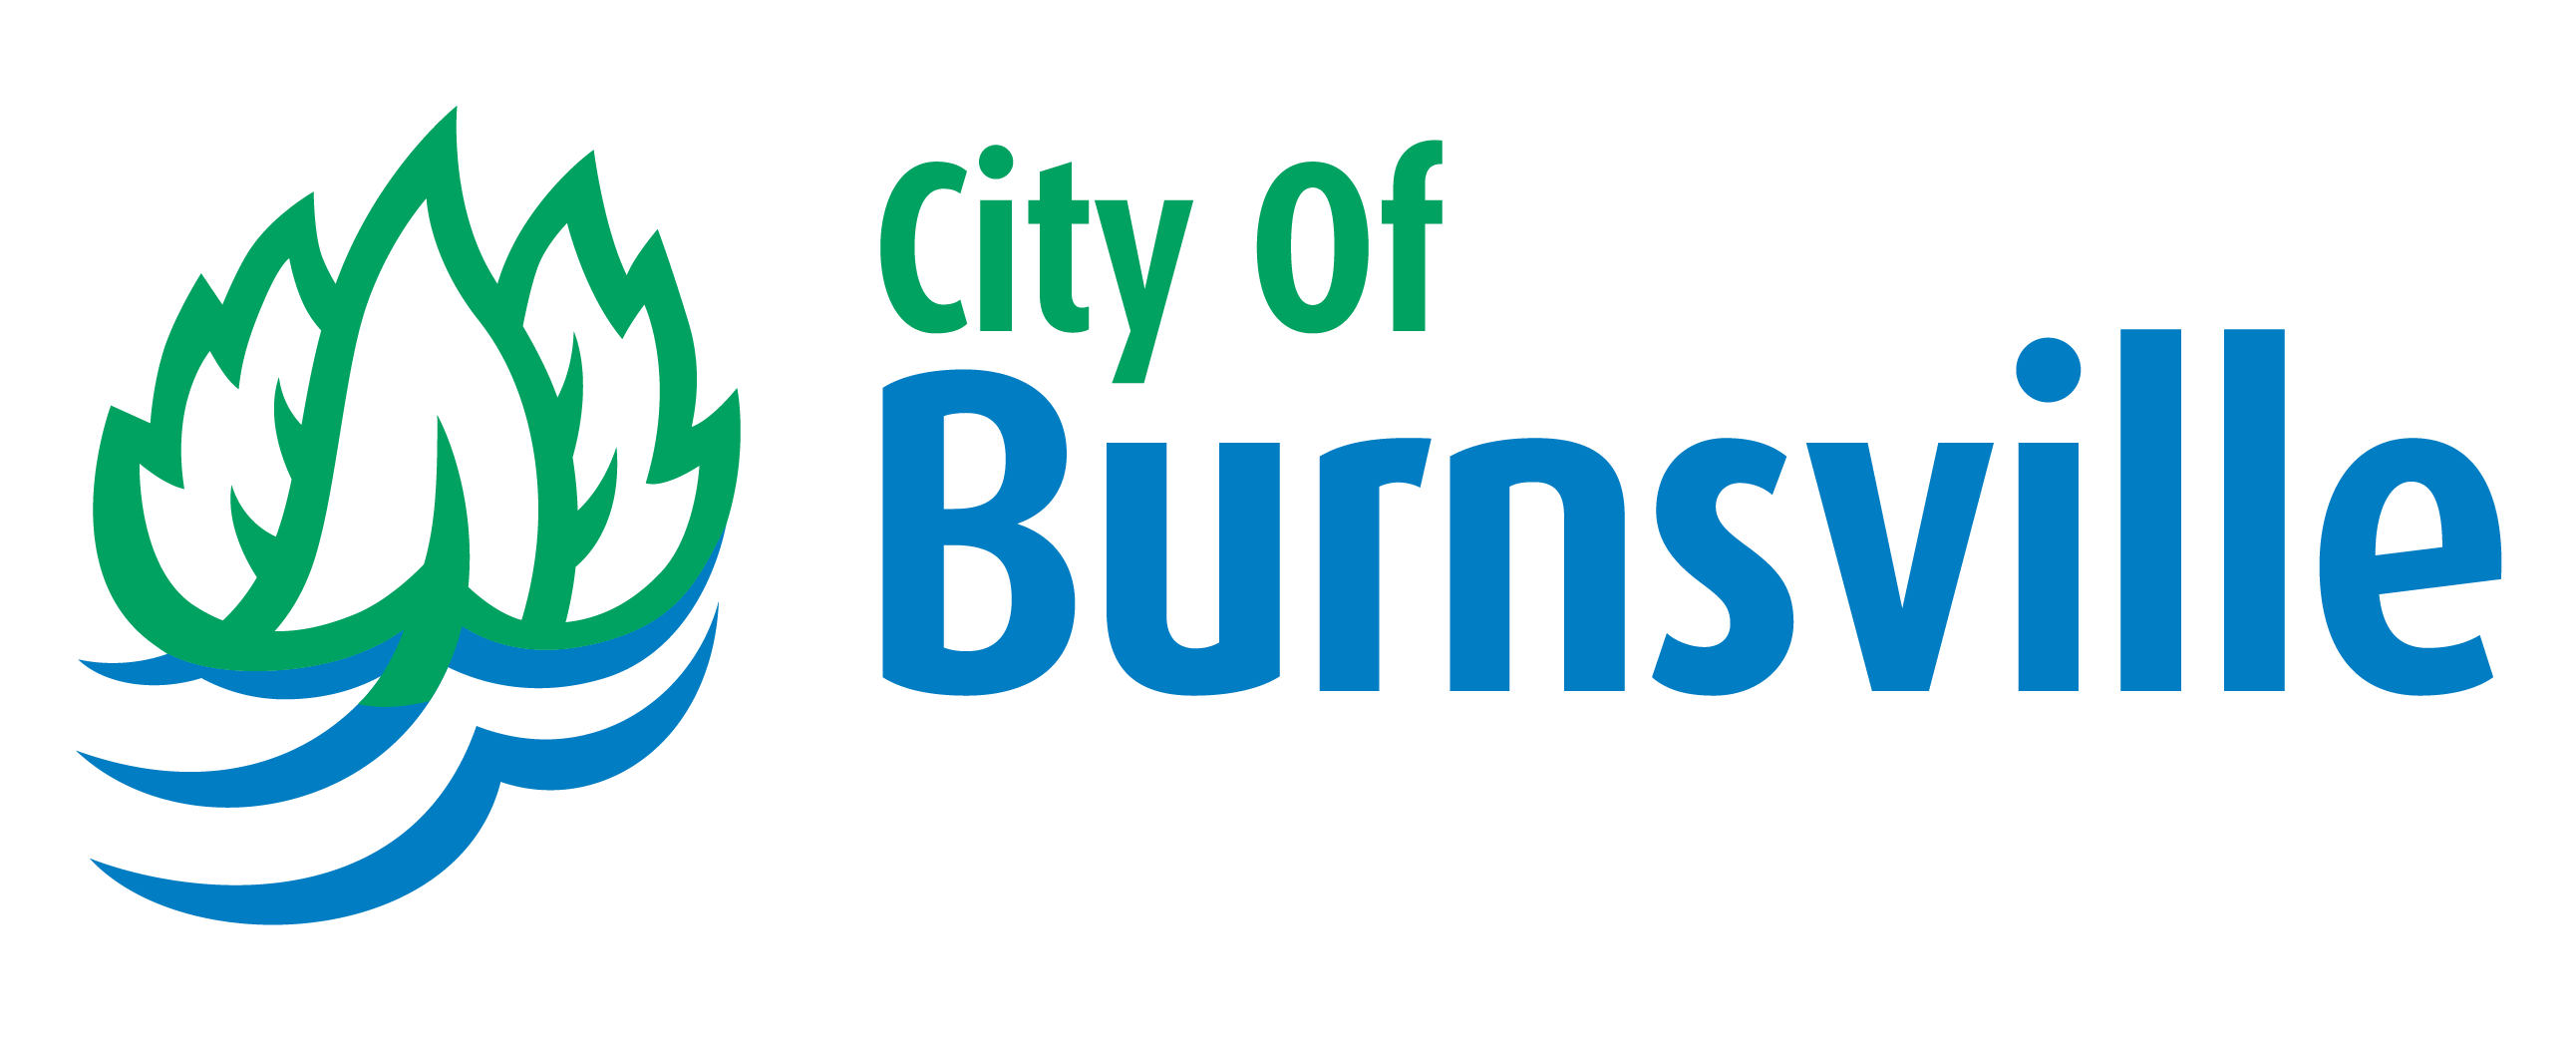 City of Burnsville logo